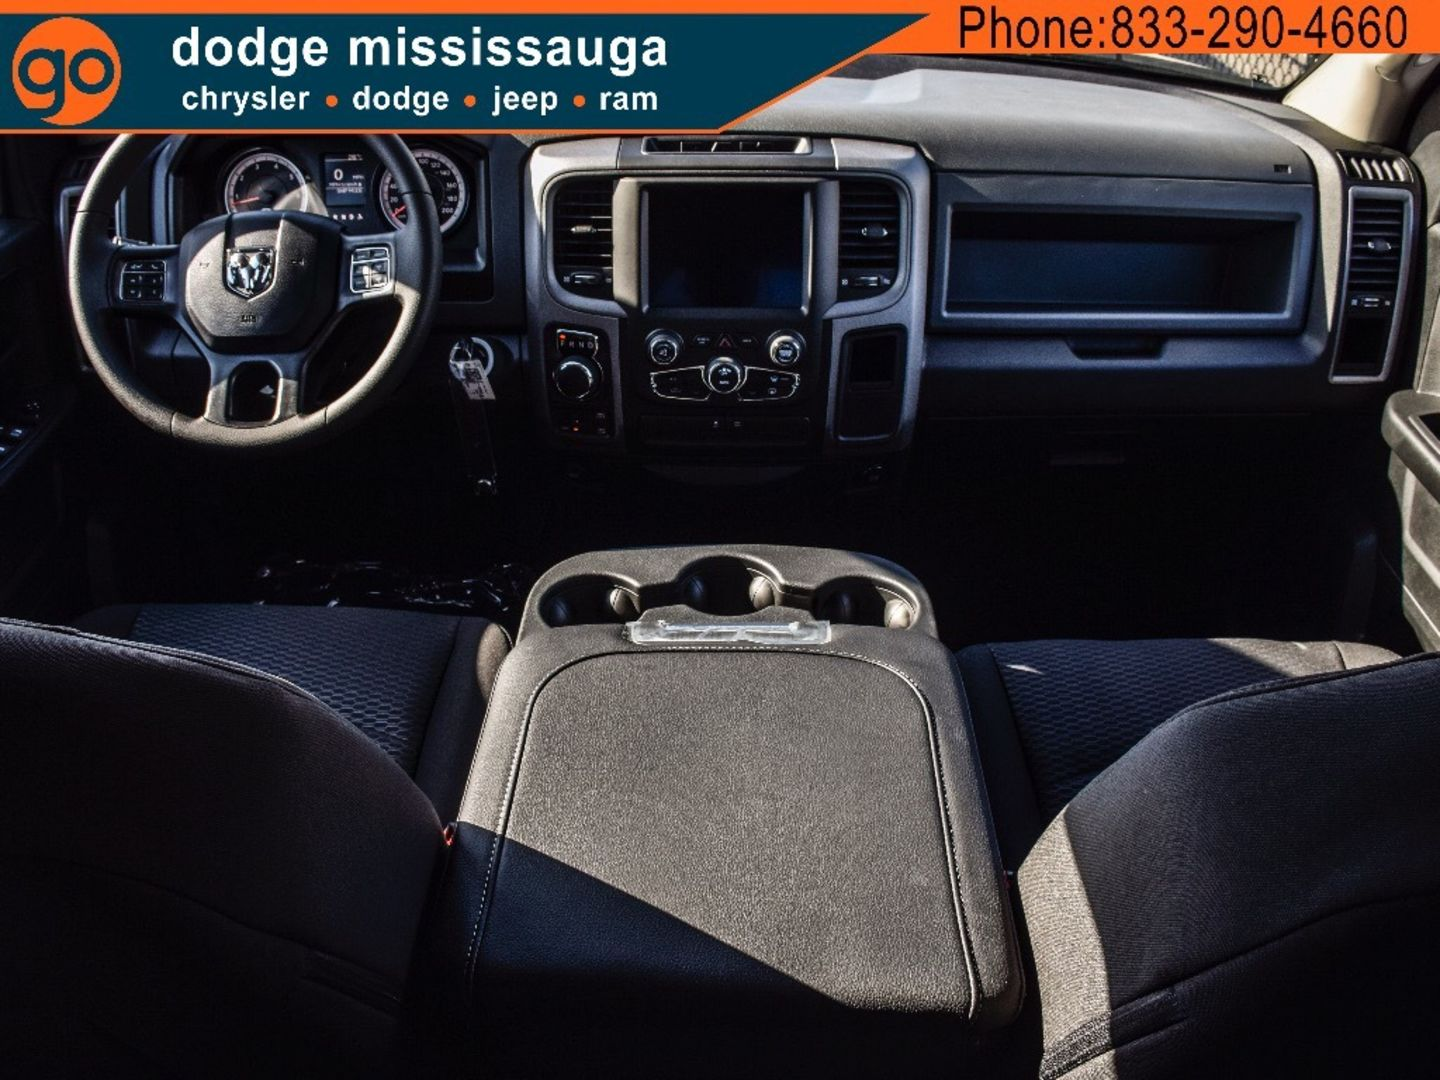 2019 Ram 1500 Classic Express for sale in Mississauga, Ontario